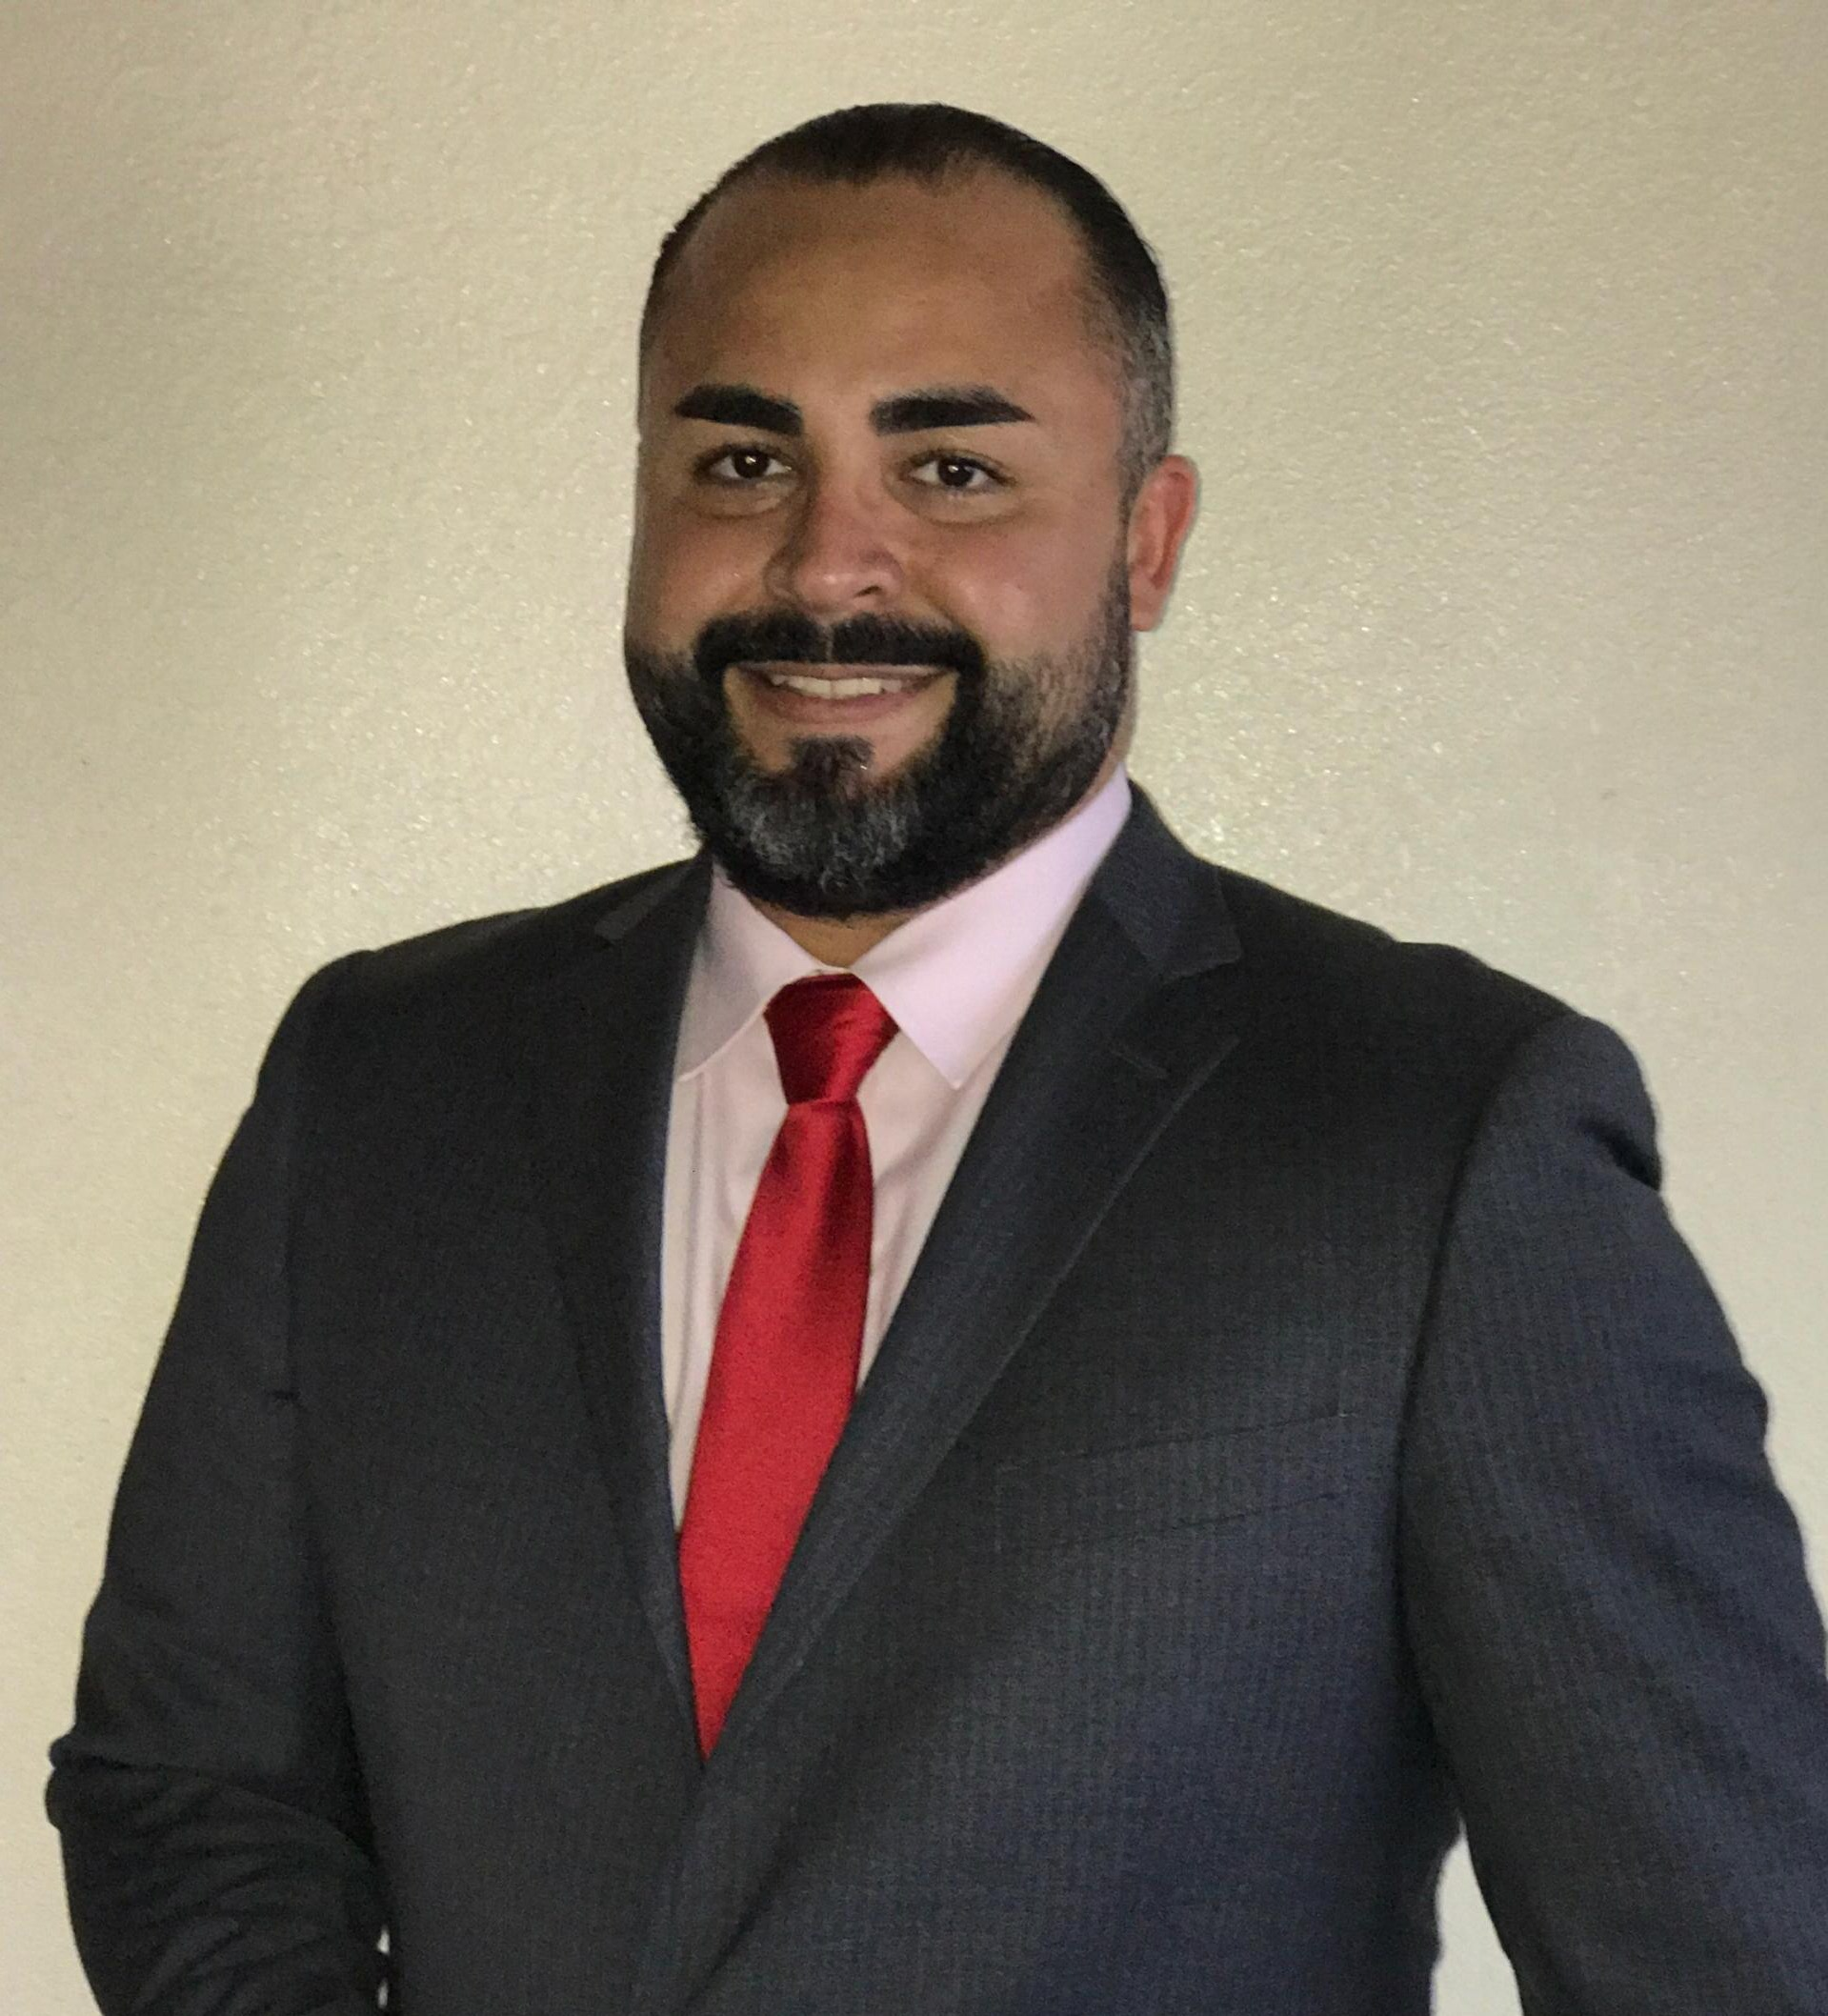 Christopher Sanchez - Agent at Saul Galvan Real Estate Services